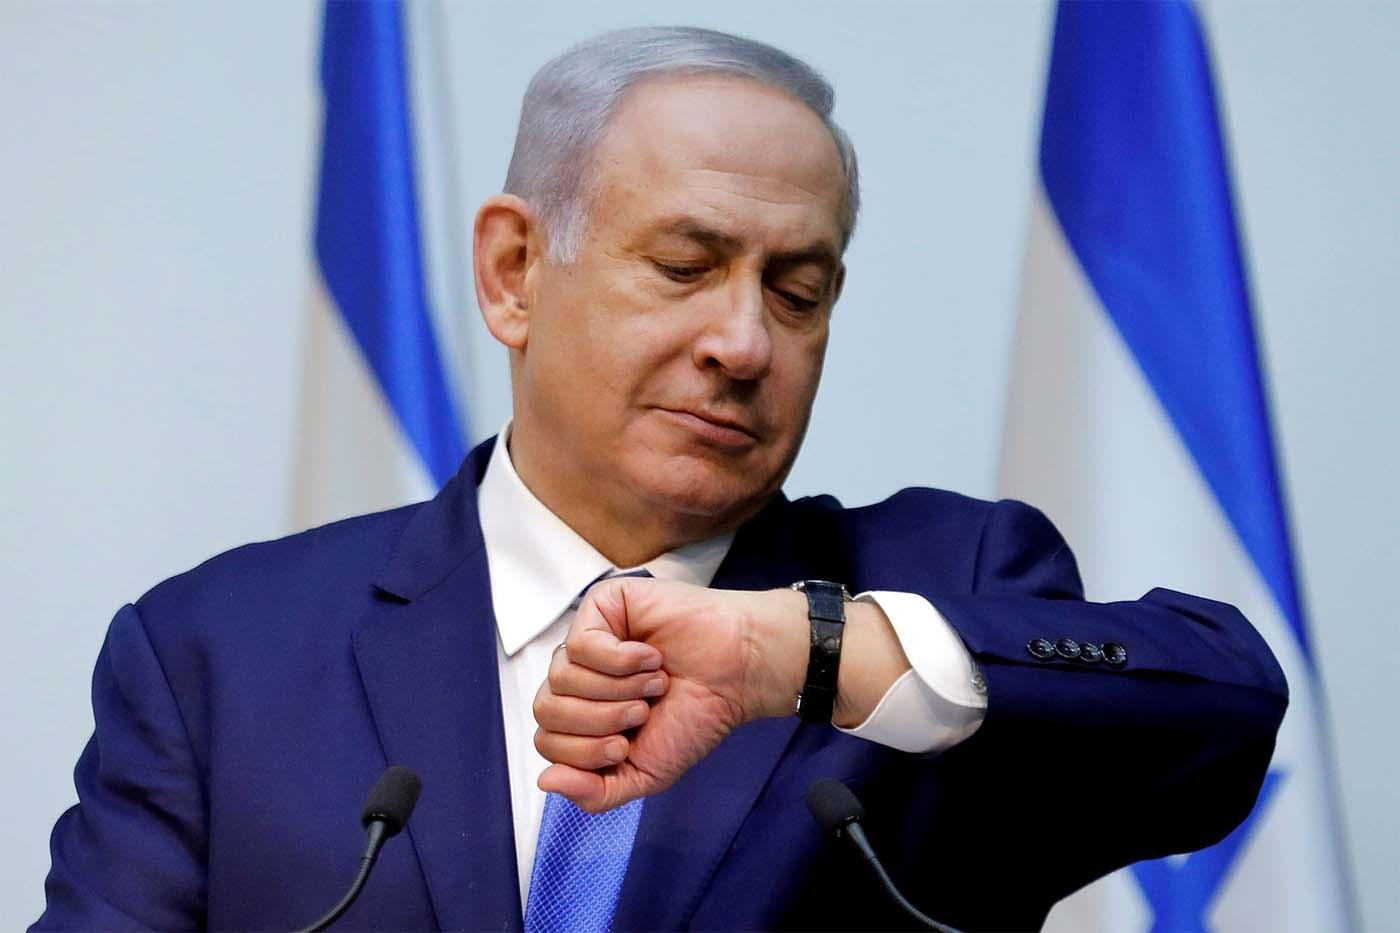 Netanyahu Unsettles Democracy in Israel Following Hot Decision to Ban Mass Protests